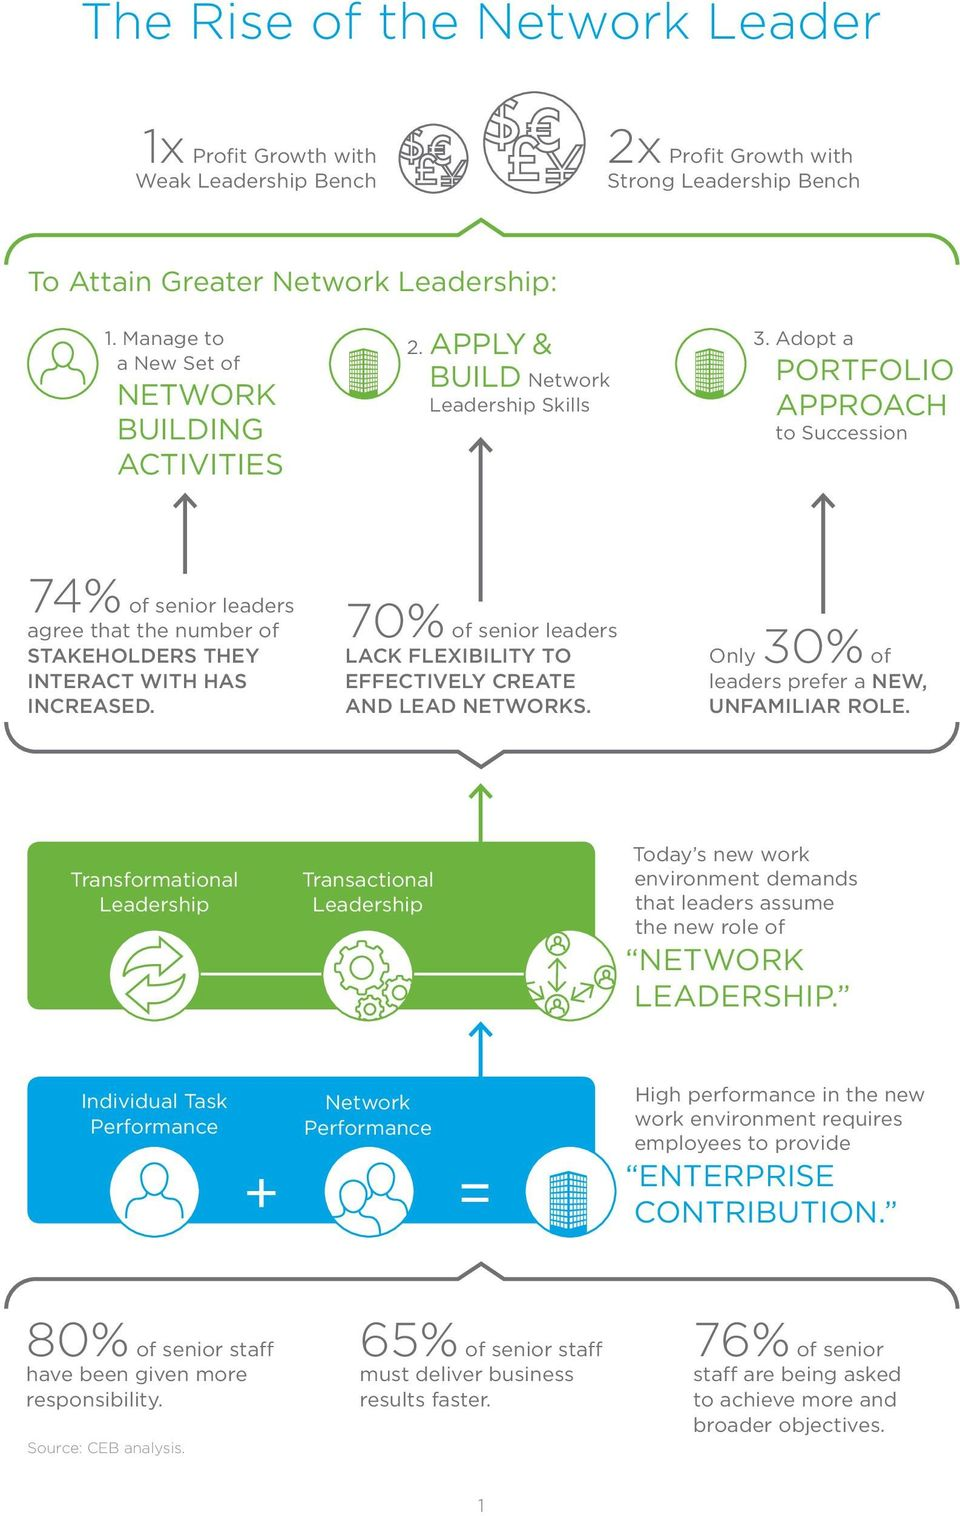 Adopt a PORTFOLIO APPROACH to Succession 74% of senior leaders agree that the number of STAKEHOLDERS THEY INTERACT WITH HAS INCREASED.